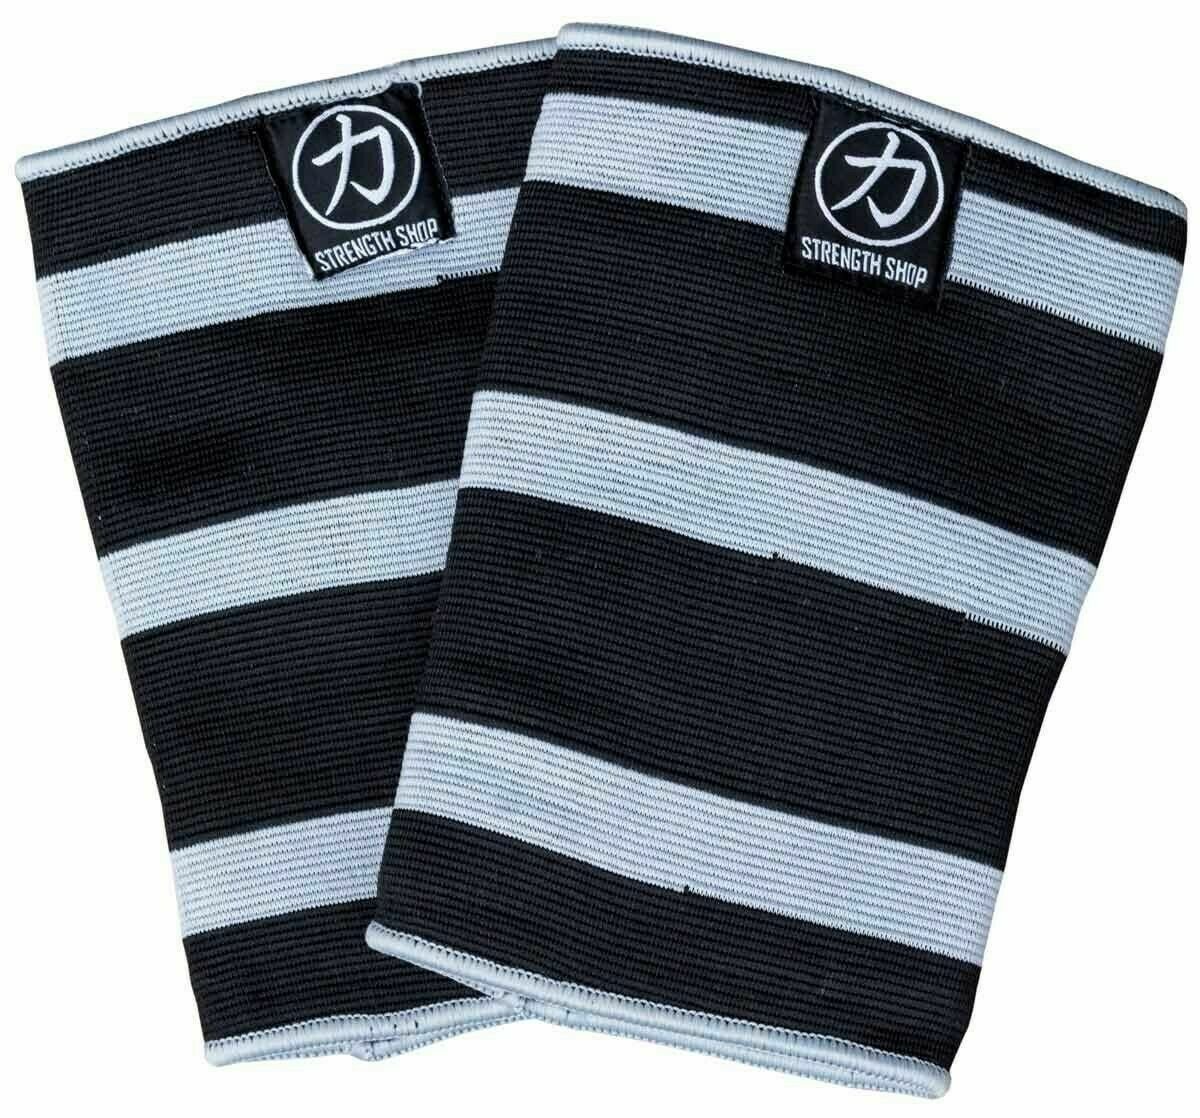 STRENGTH SHOP TRIPLE PLY ODIN KNEE SLEEVES (XL) - FAST SHIPPING